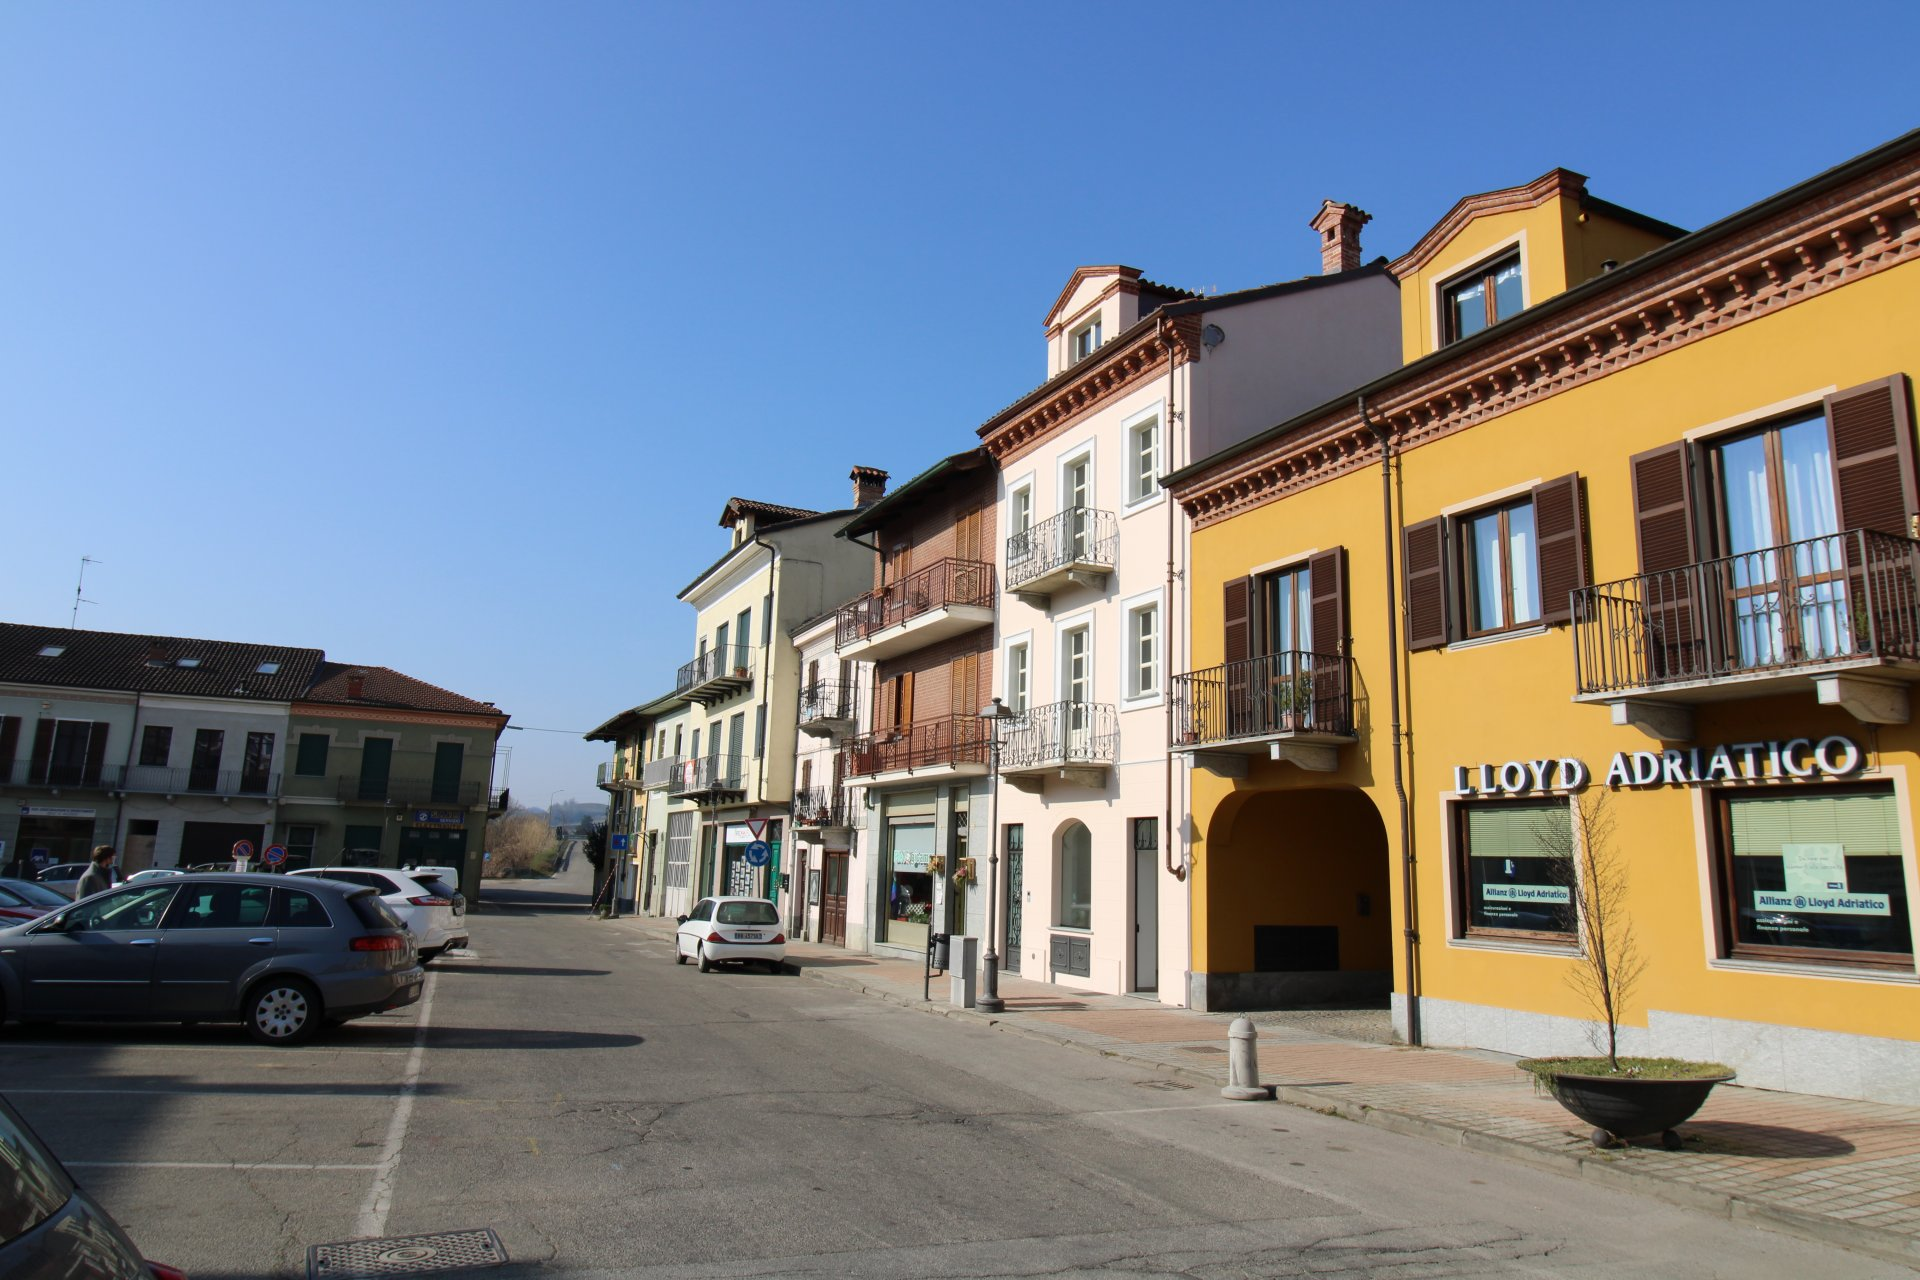 Locale commerciale a Canale